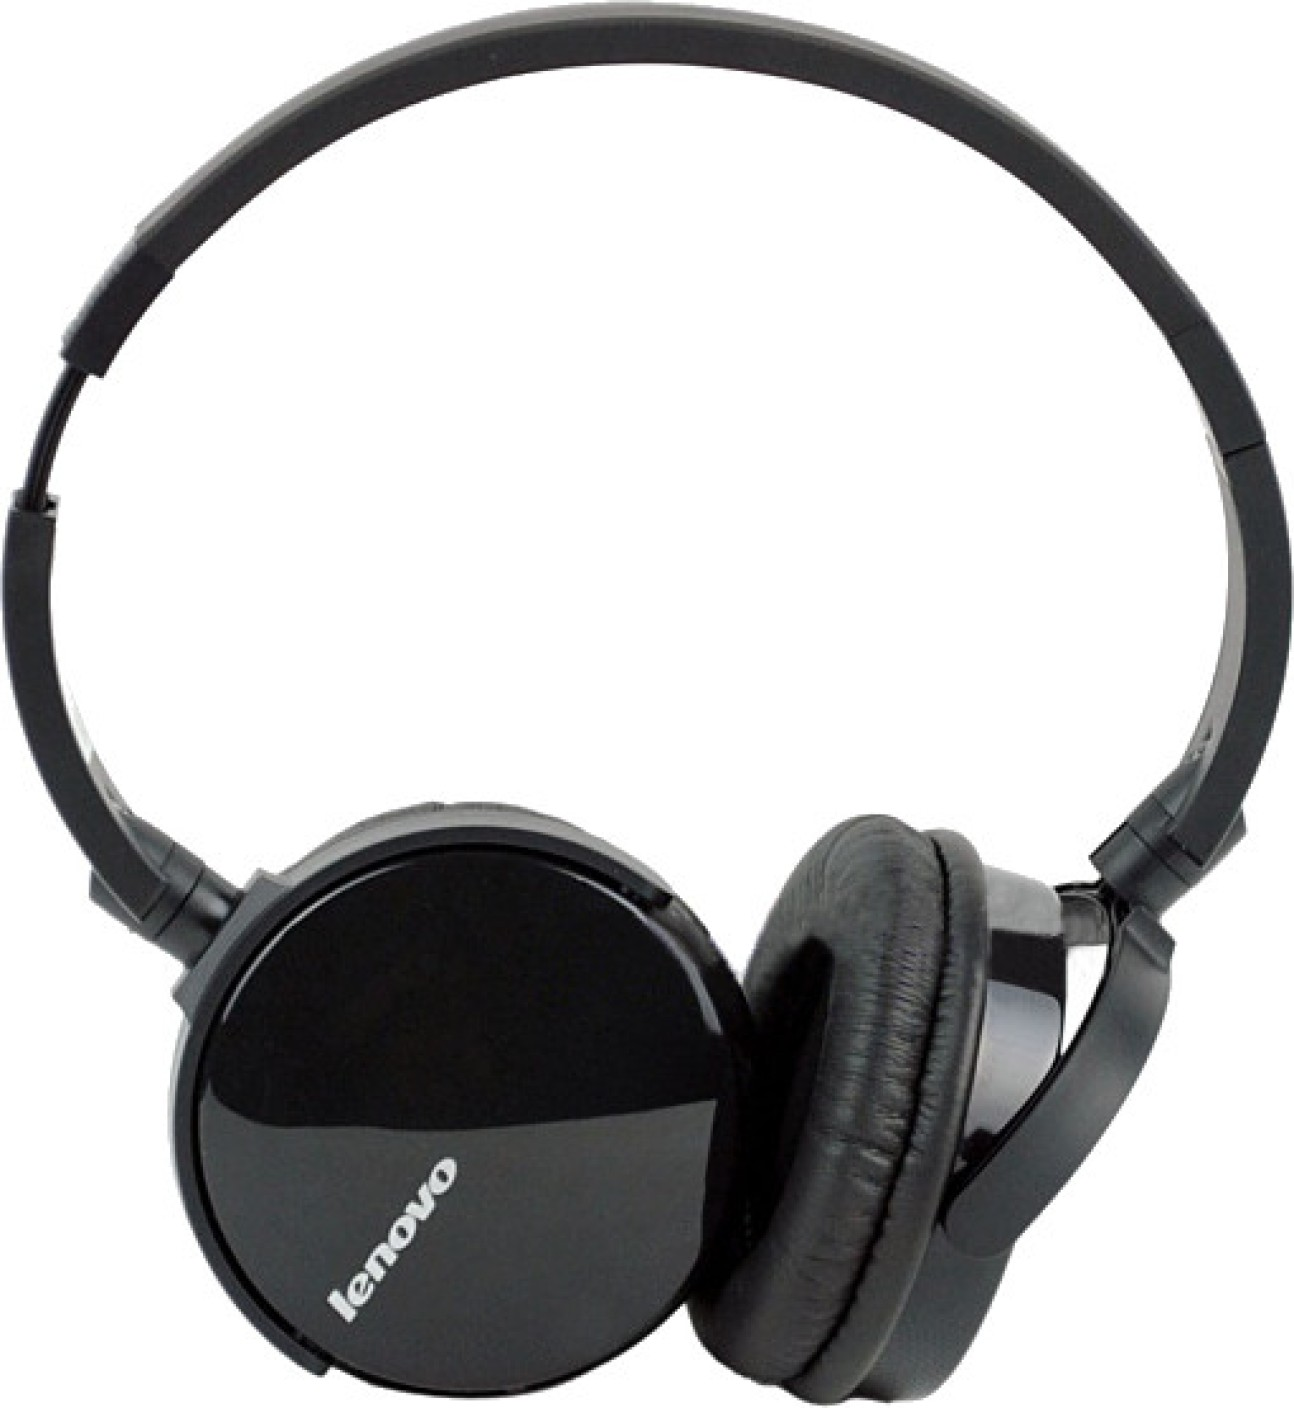 Lenovo W770 Bluetooth Headset With Mic Price In India